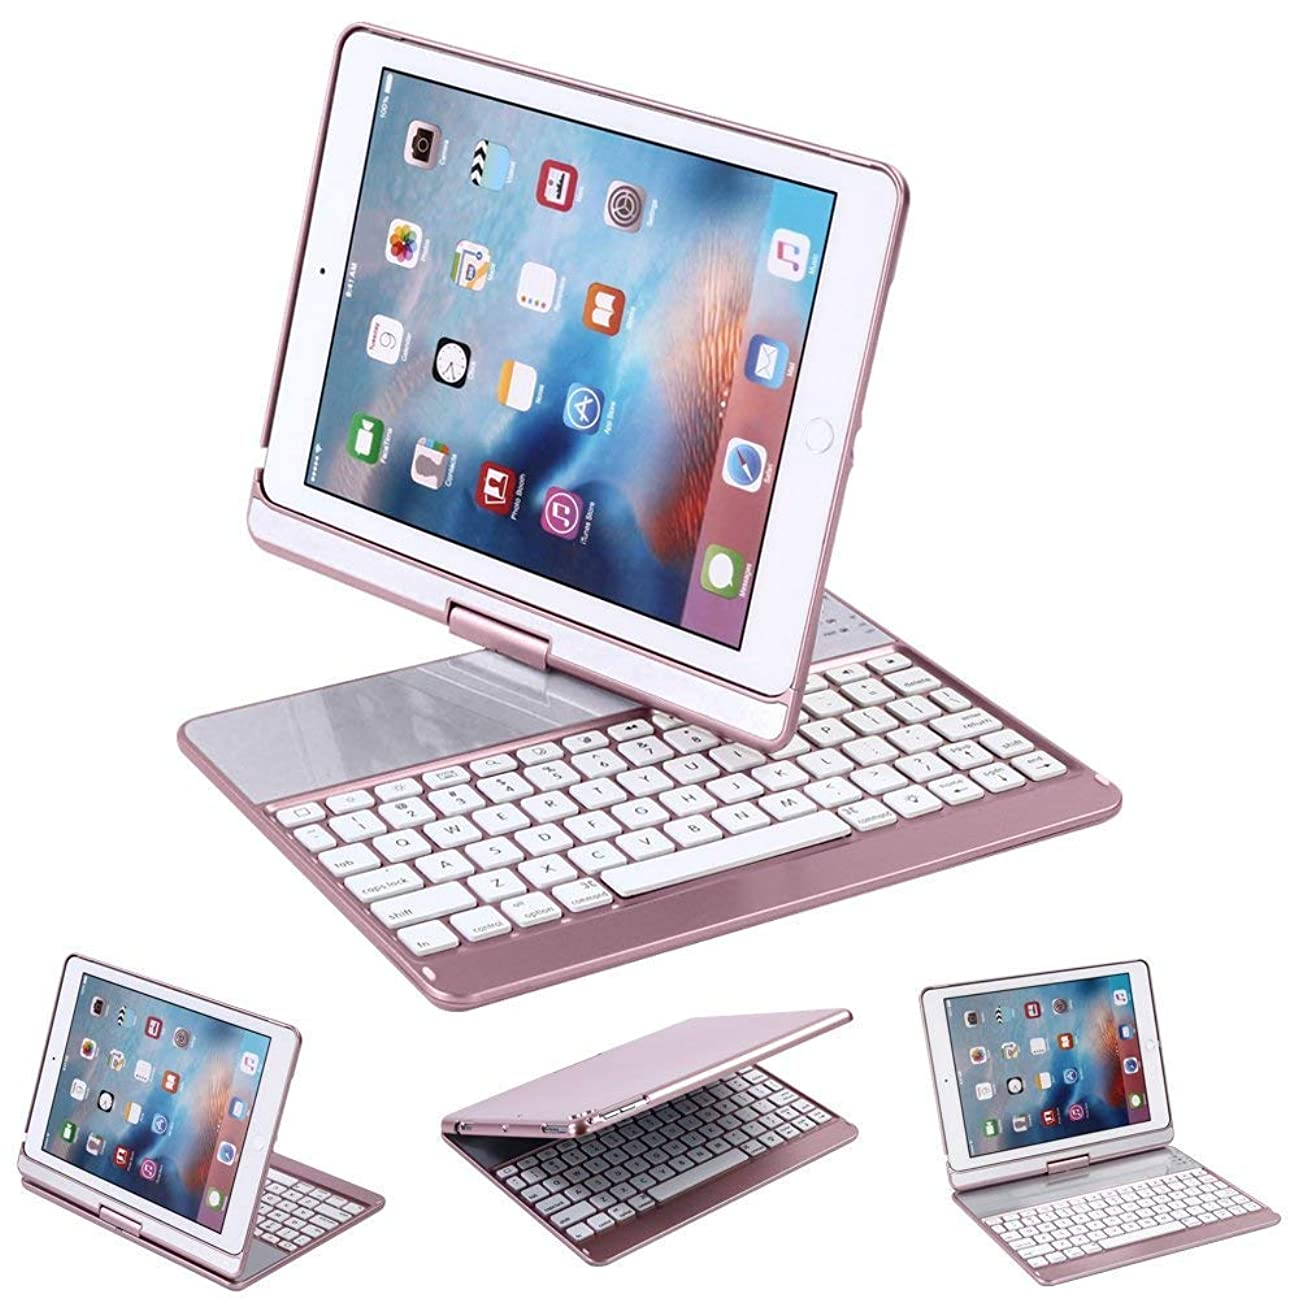 MOSTOP New iPad 9.7 2017 Keyboard Case Bluetooth Keyboard Protective Case with 7 Colors Backlits & 360° Rotation Stand for New iPad 9.7 2017 / iPad Air / iPad Air 2 / iPad Pro 9.7 (Rose Gold)